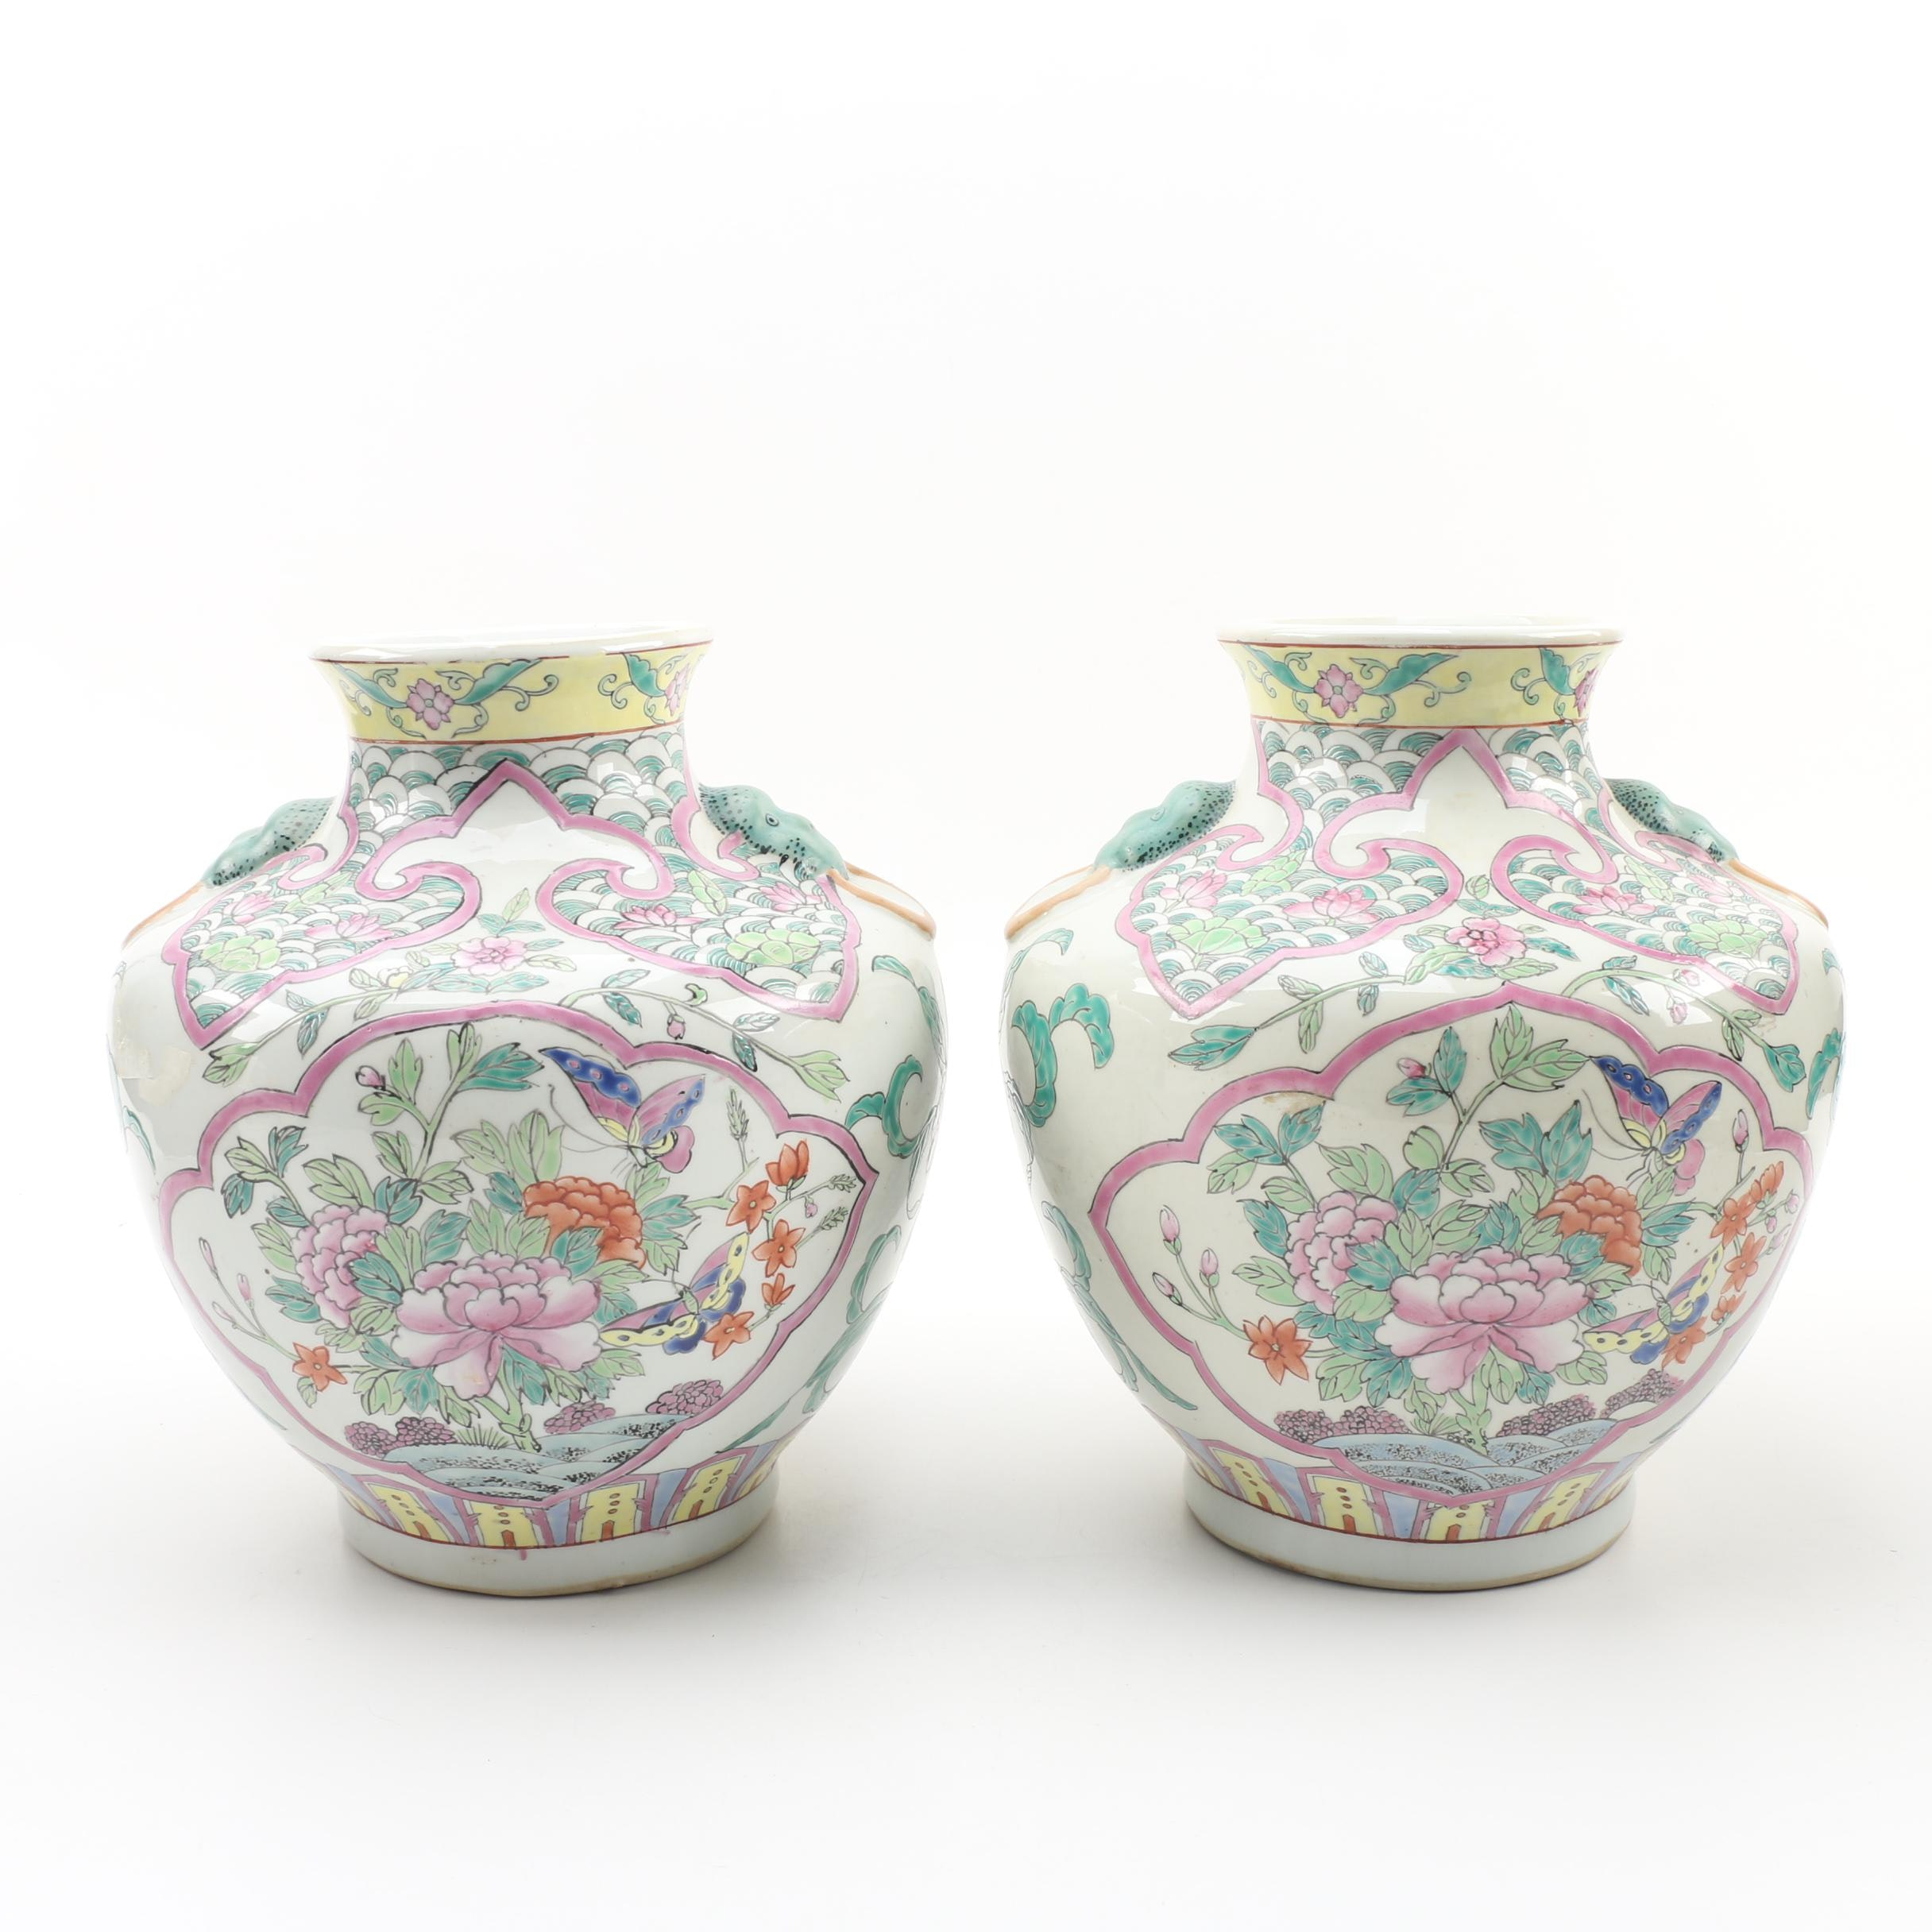 Chinese Ceramic Vases with Peony and Butterfly Motif, Late 20th Century